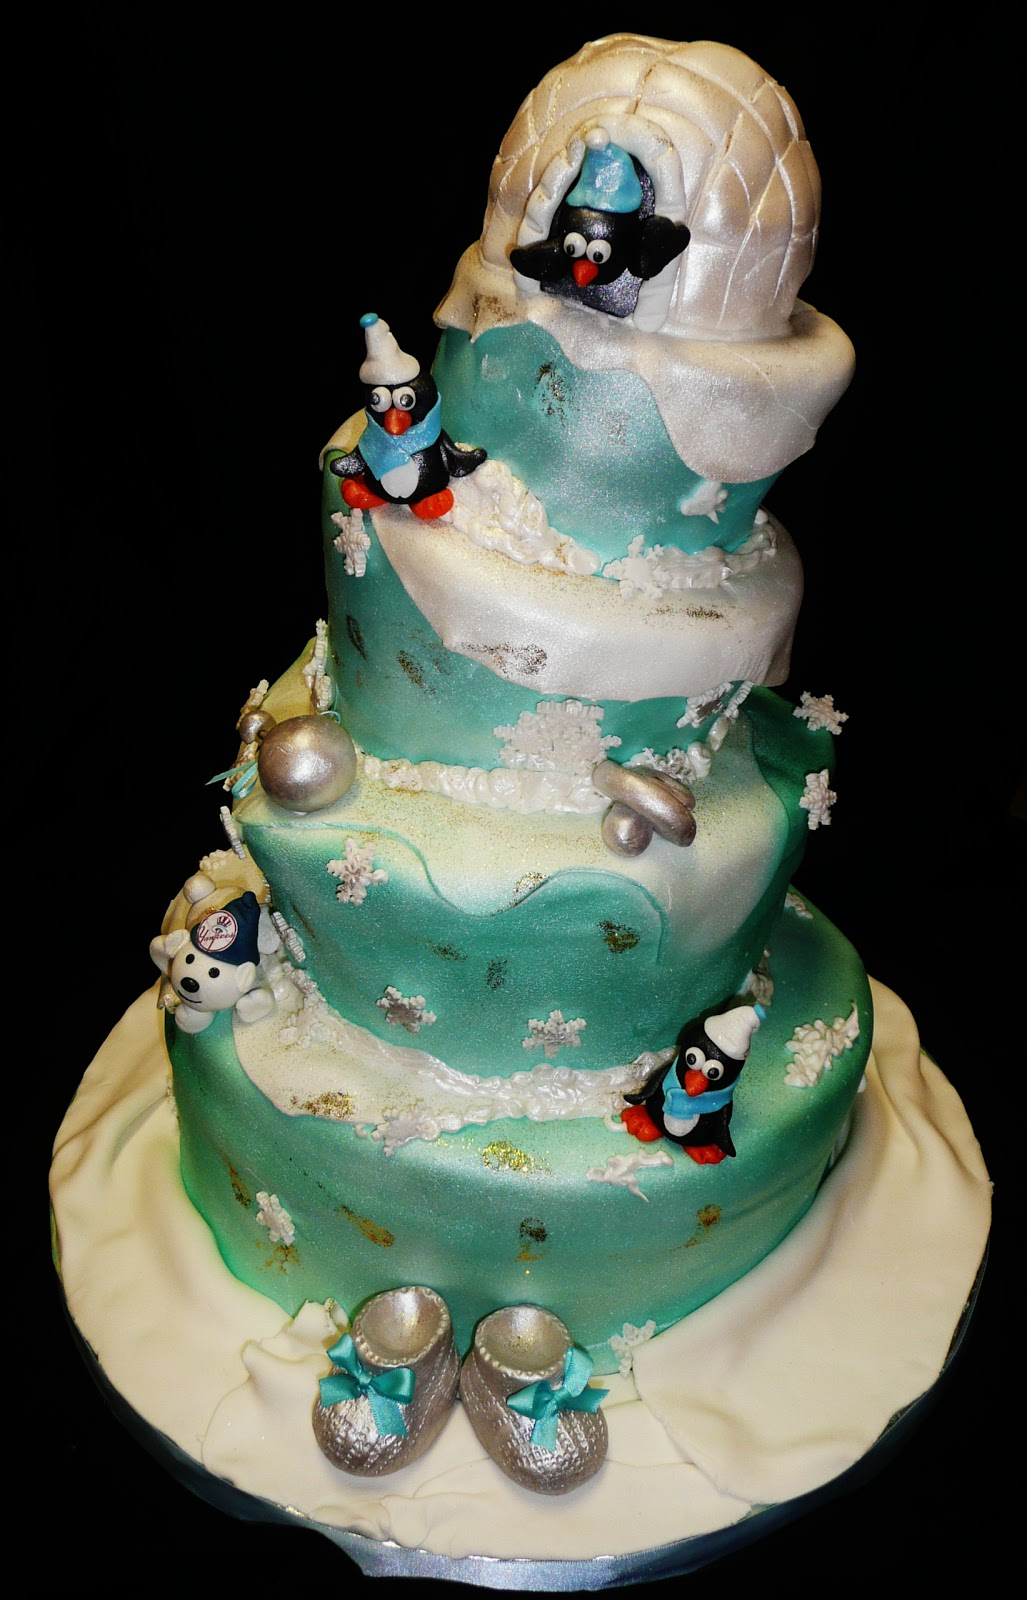 Winter Wonderland Baby Shower Themed Cake